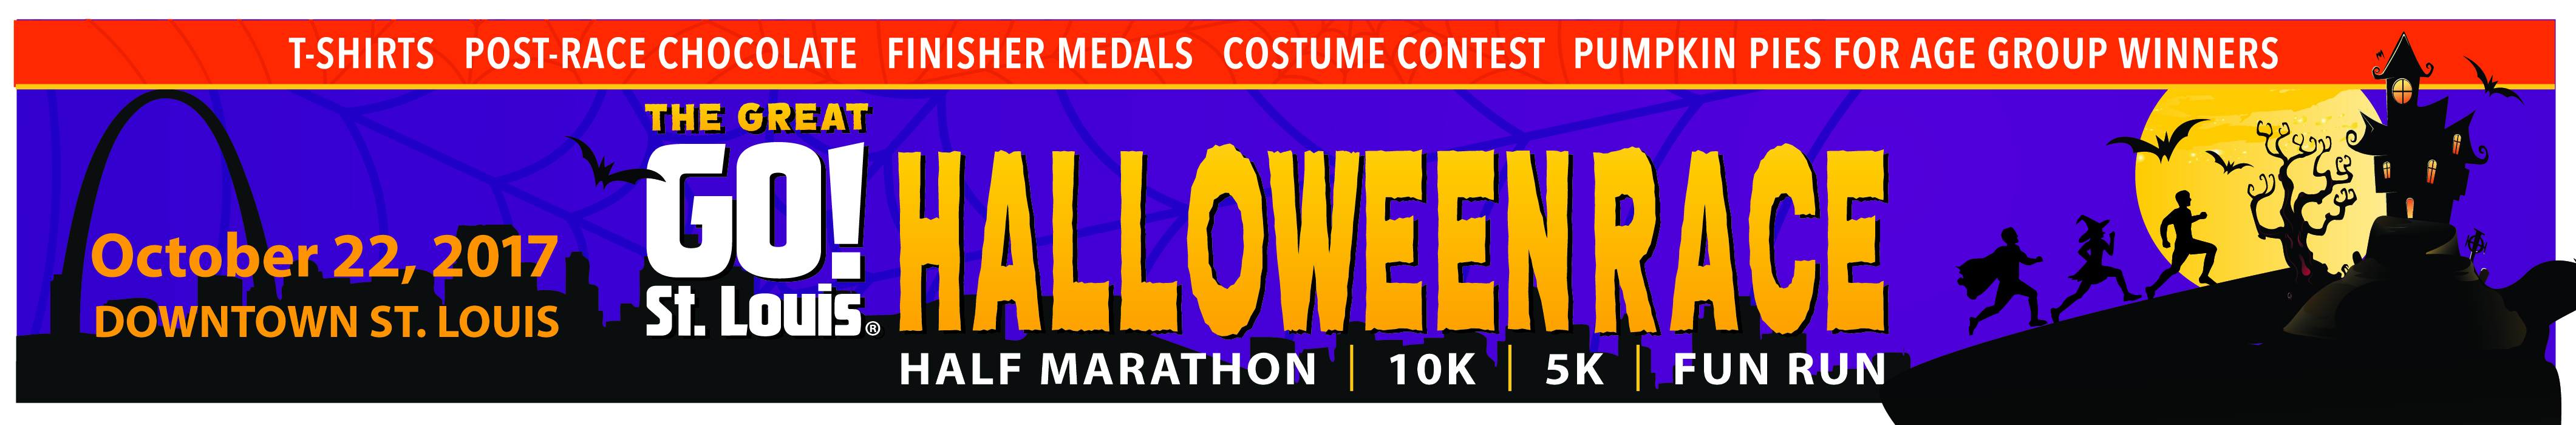 Register for the 2017 Great GO! St. Louis Halloween Race